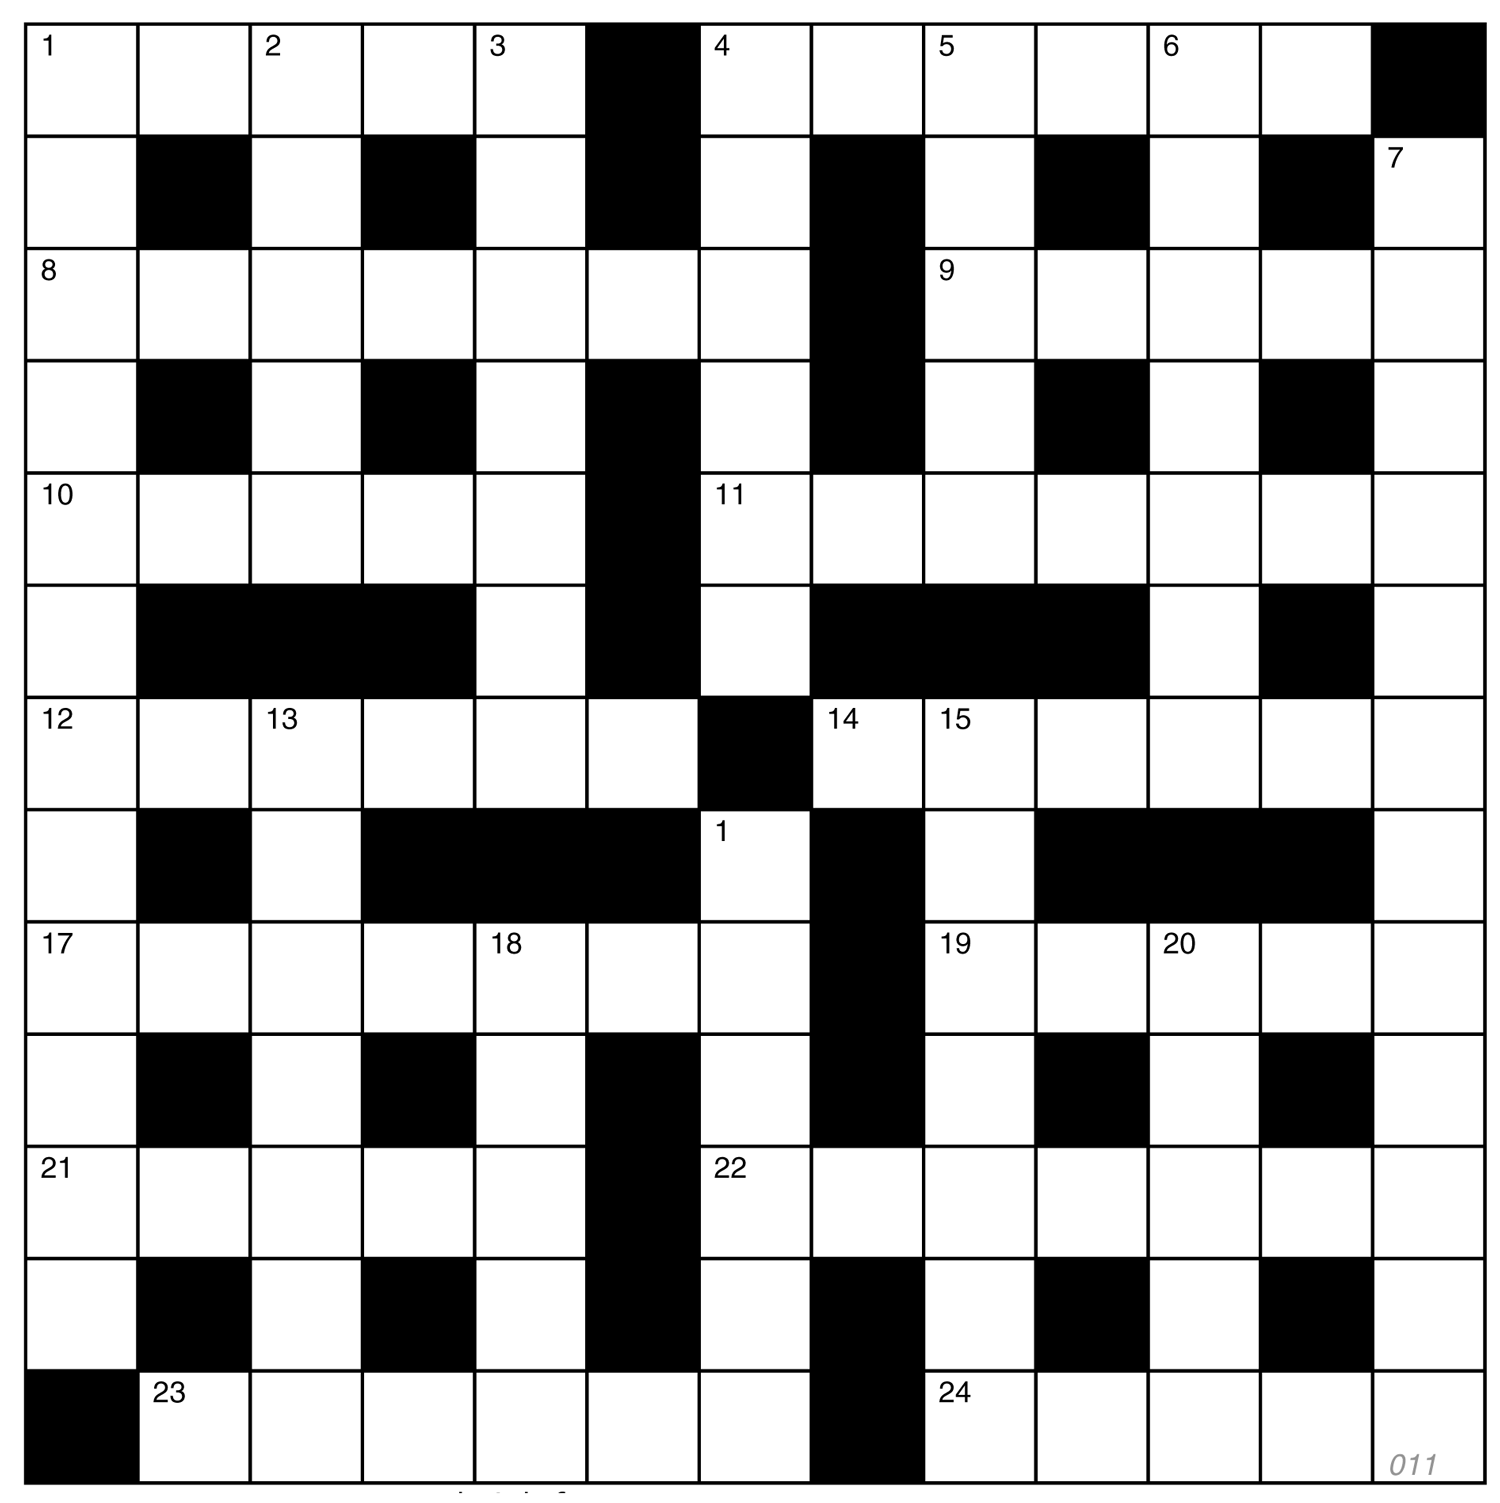 Solve these puzzle problem tests with answers included